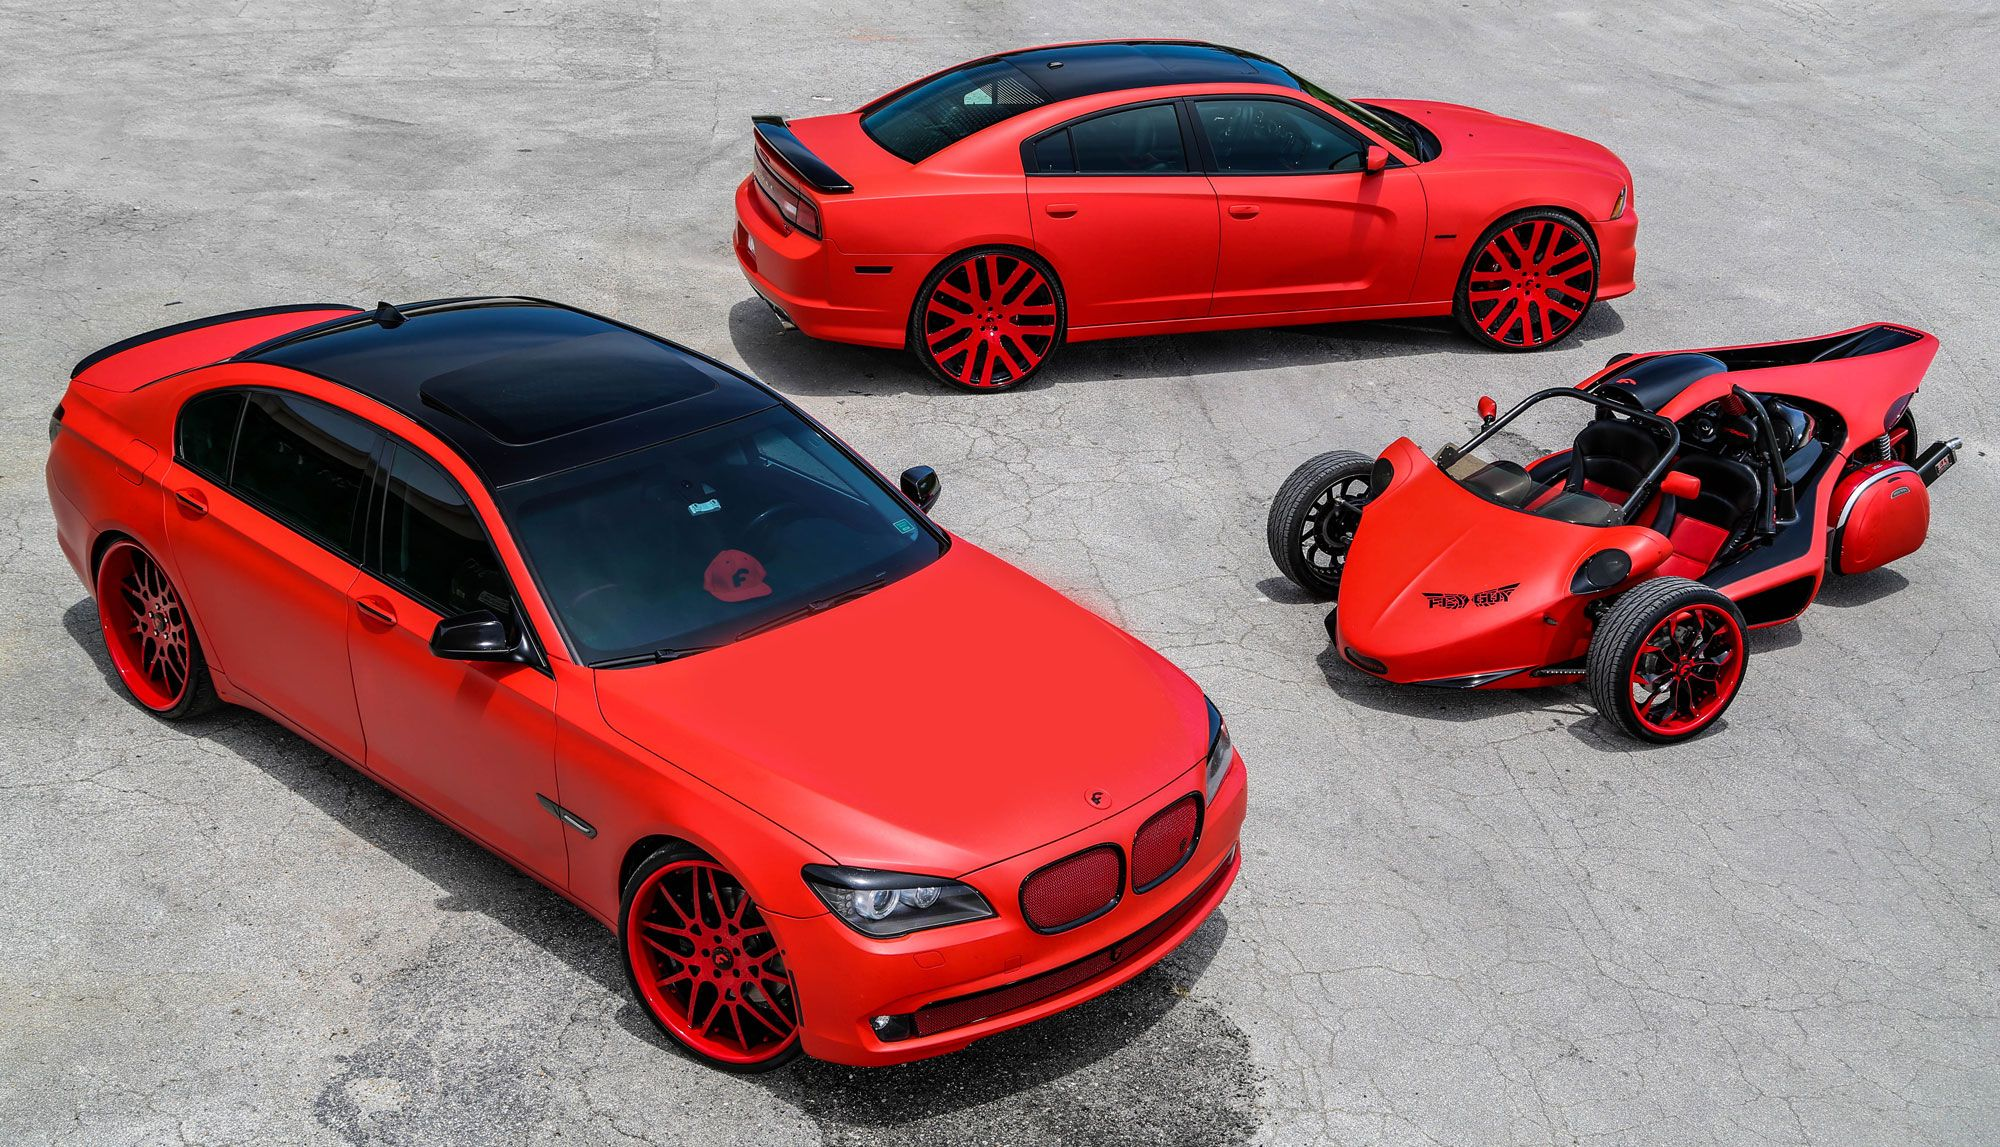 Red All 4 Jpg 2000 1147 Bmw Red Matte Red Matte Cars